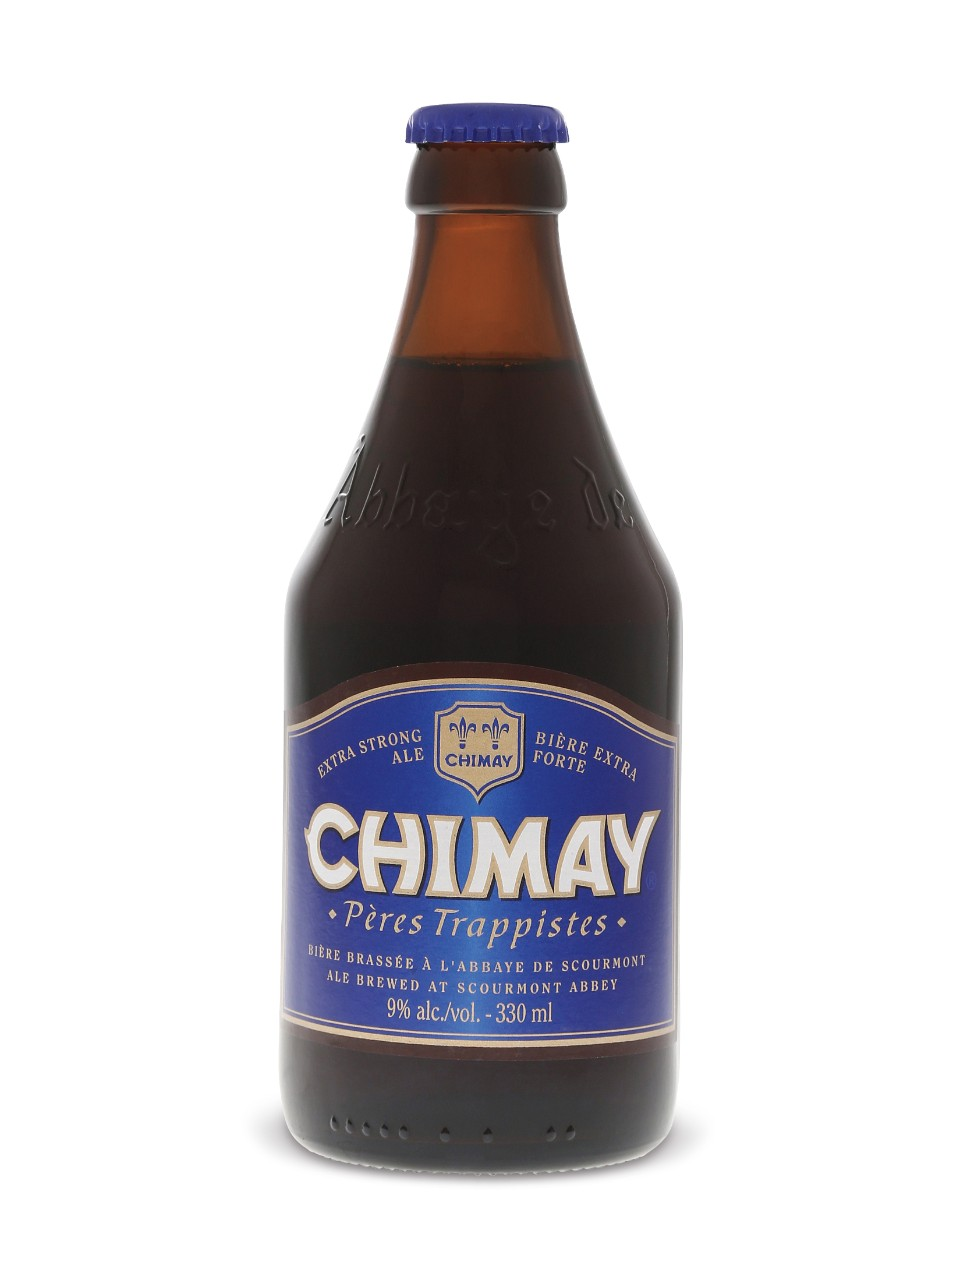 Chimay Blue Cap from LCBO